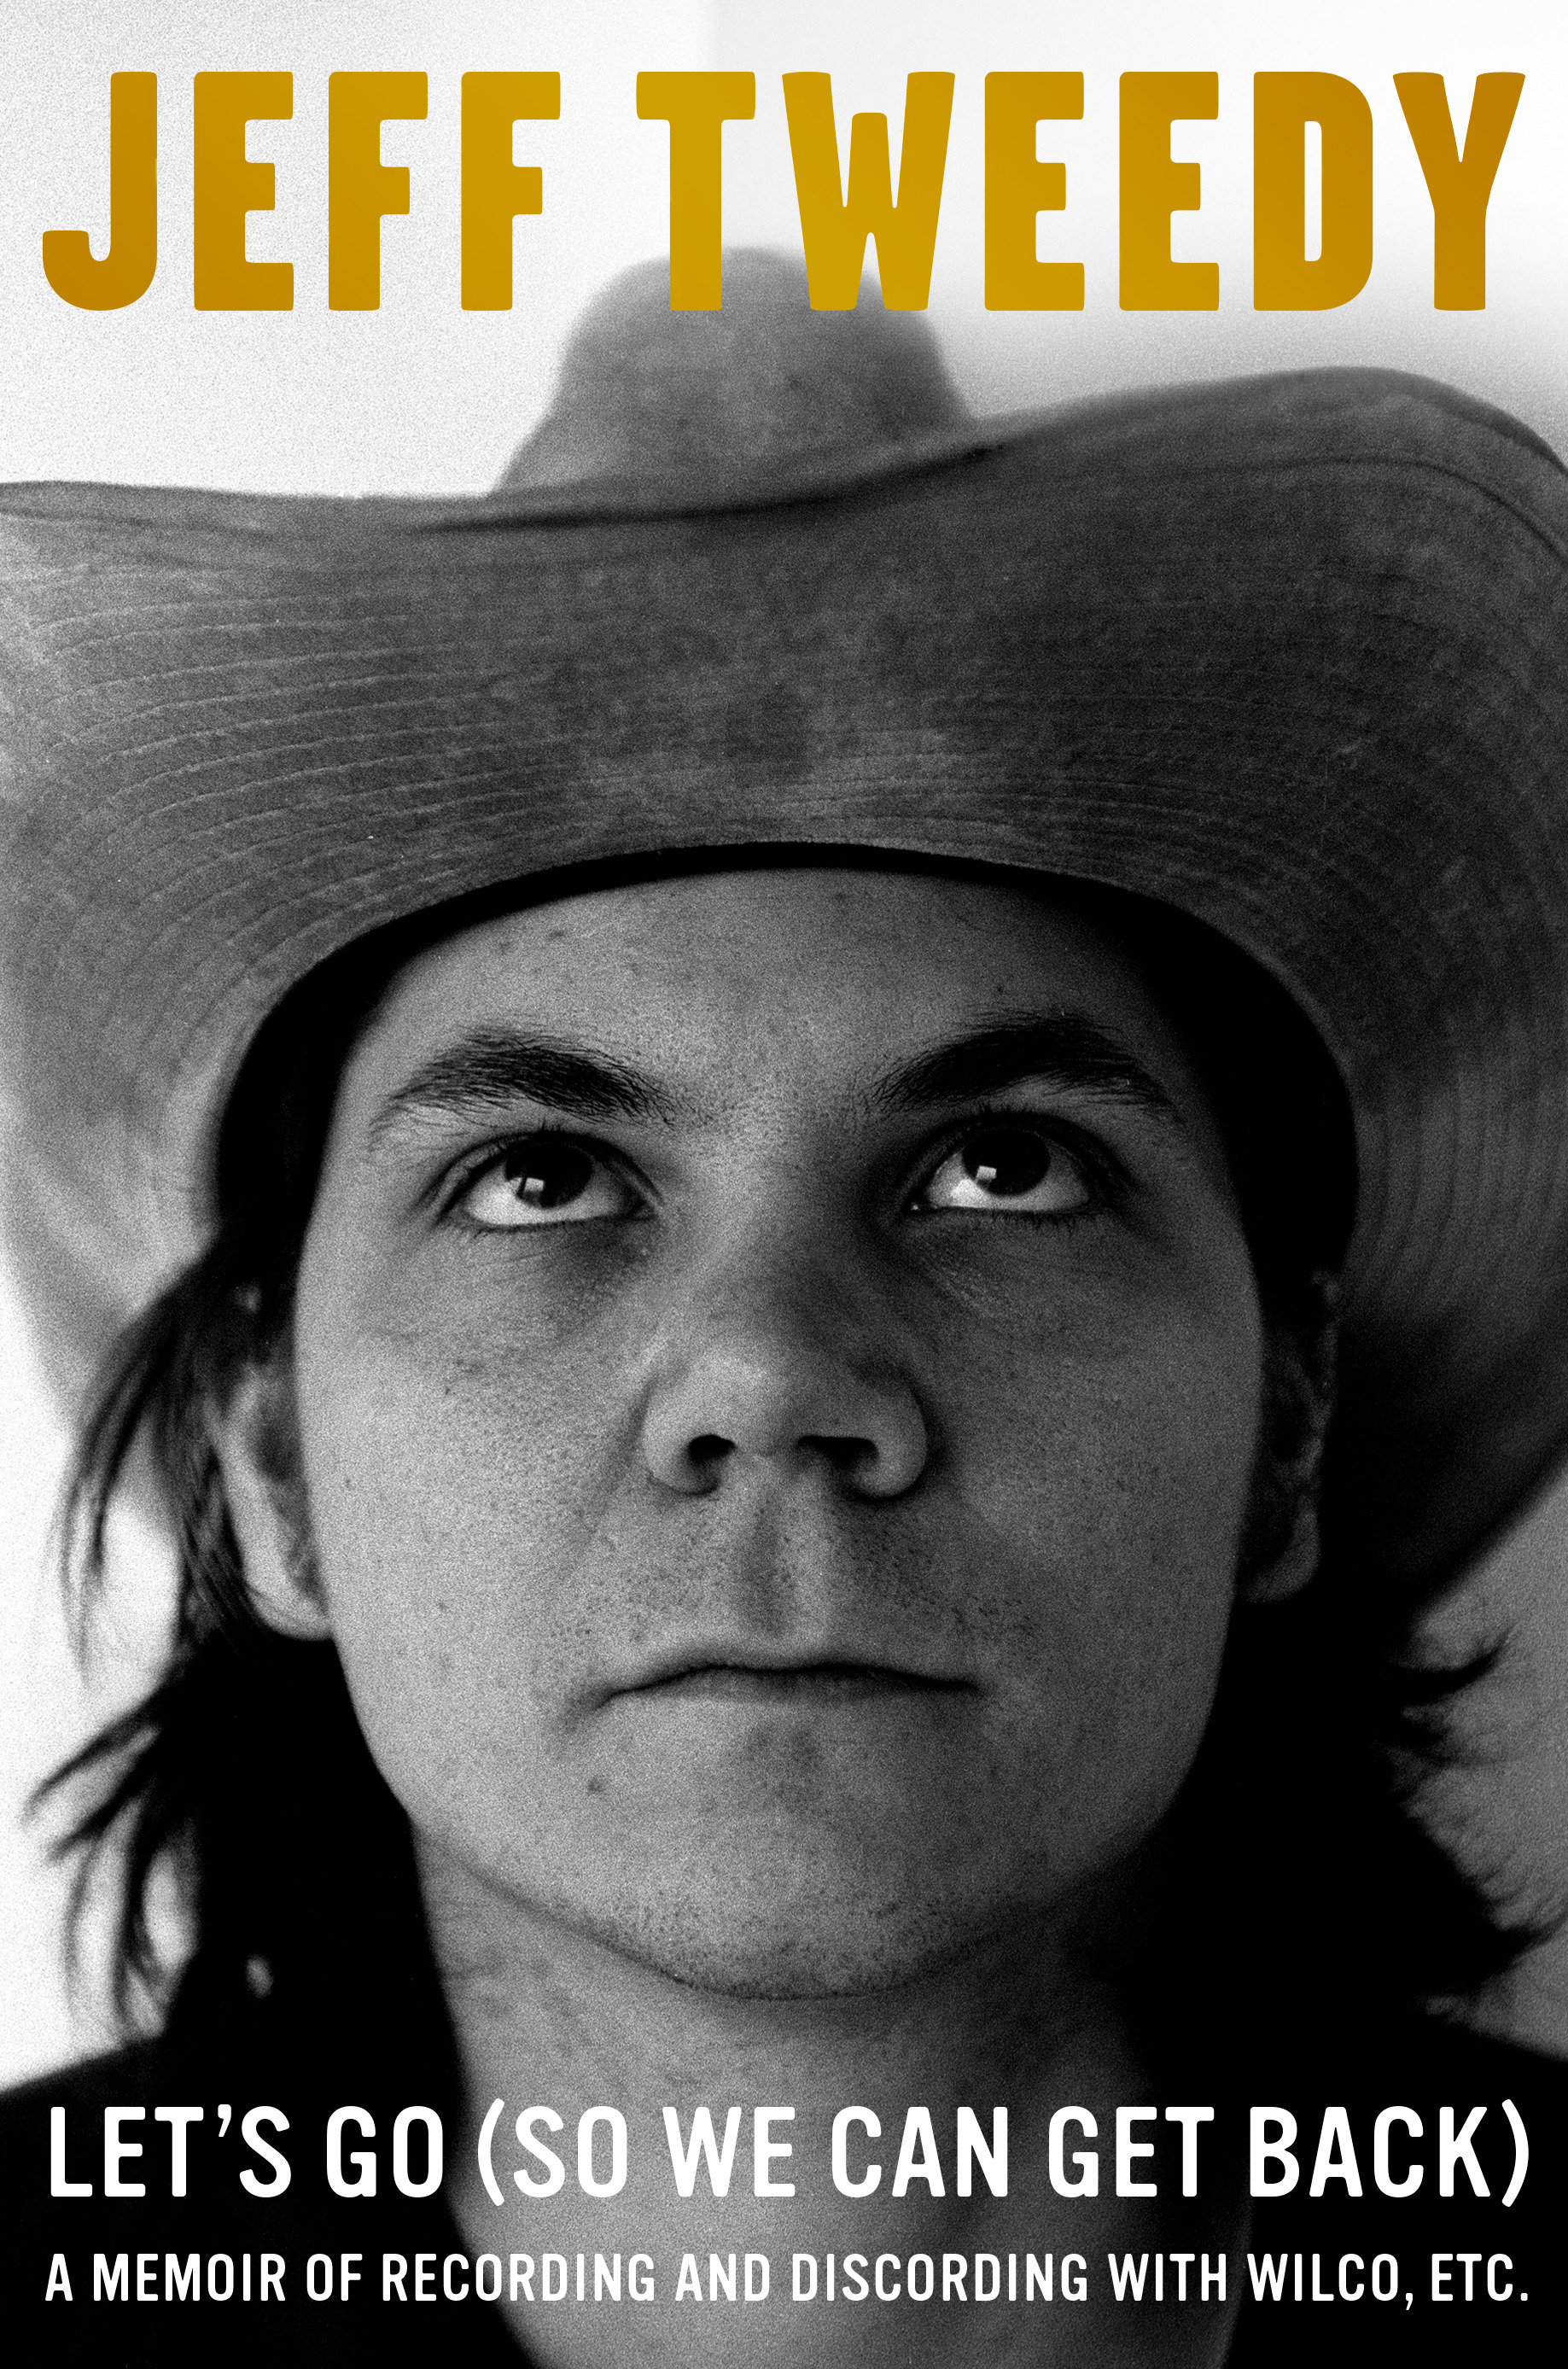 Jeff Tweedy On Anxiety, Addiction And A Lifetime Making Art